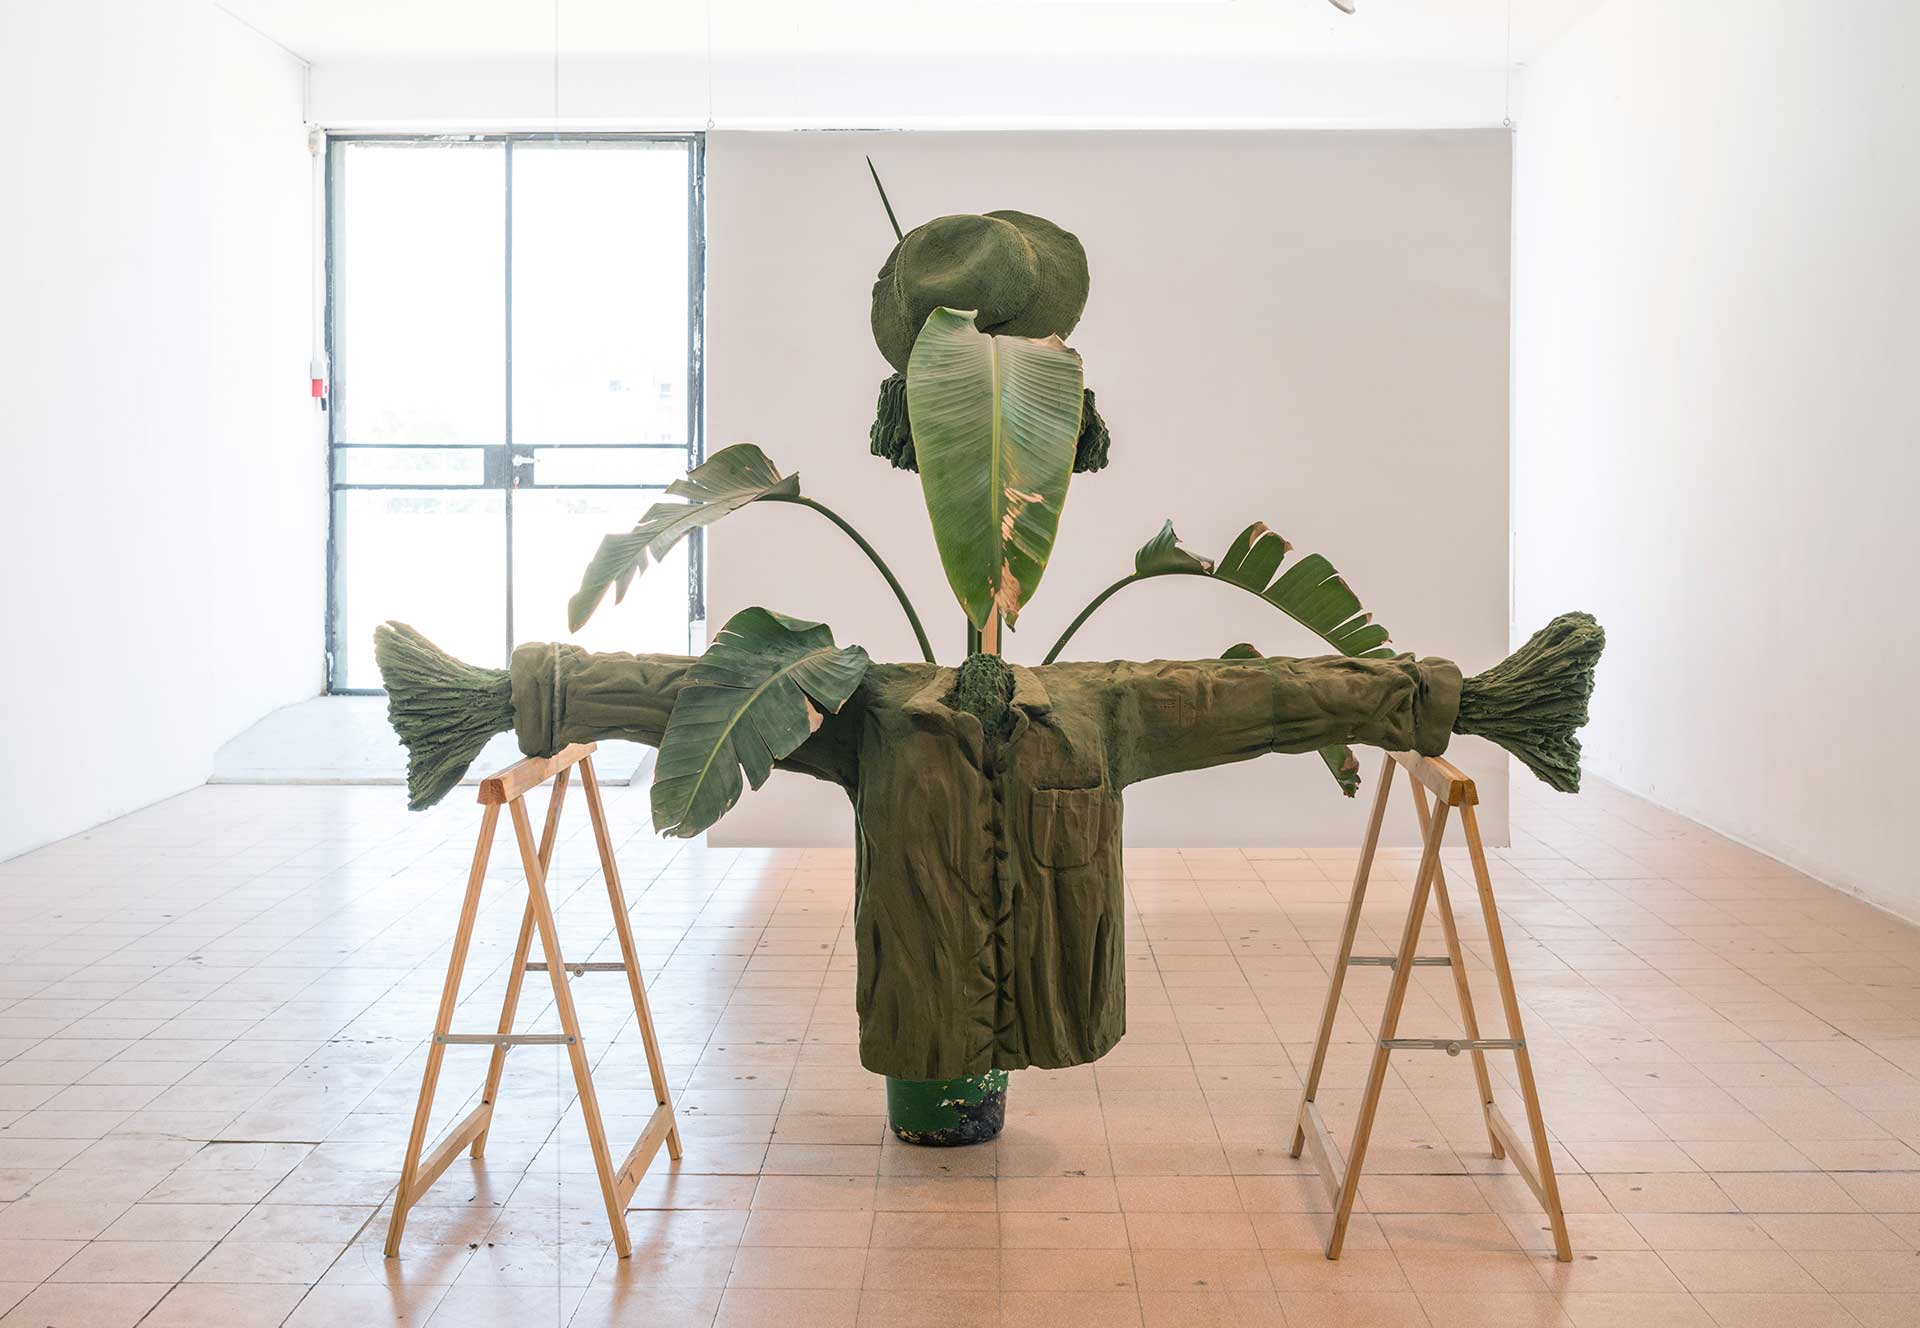 Untitled (scarecrow), 2017 Floral foam carving, flowerpot, plants, water,found object, 200 x 150 x 80 cm